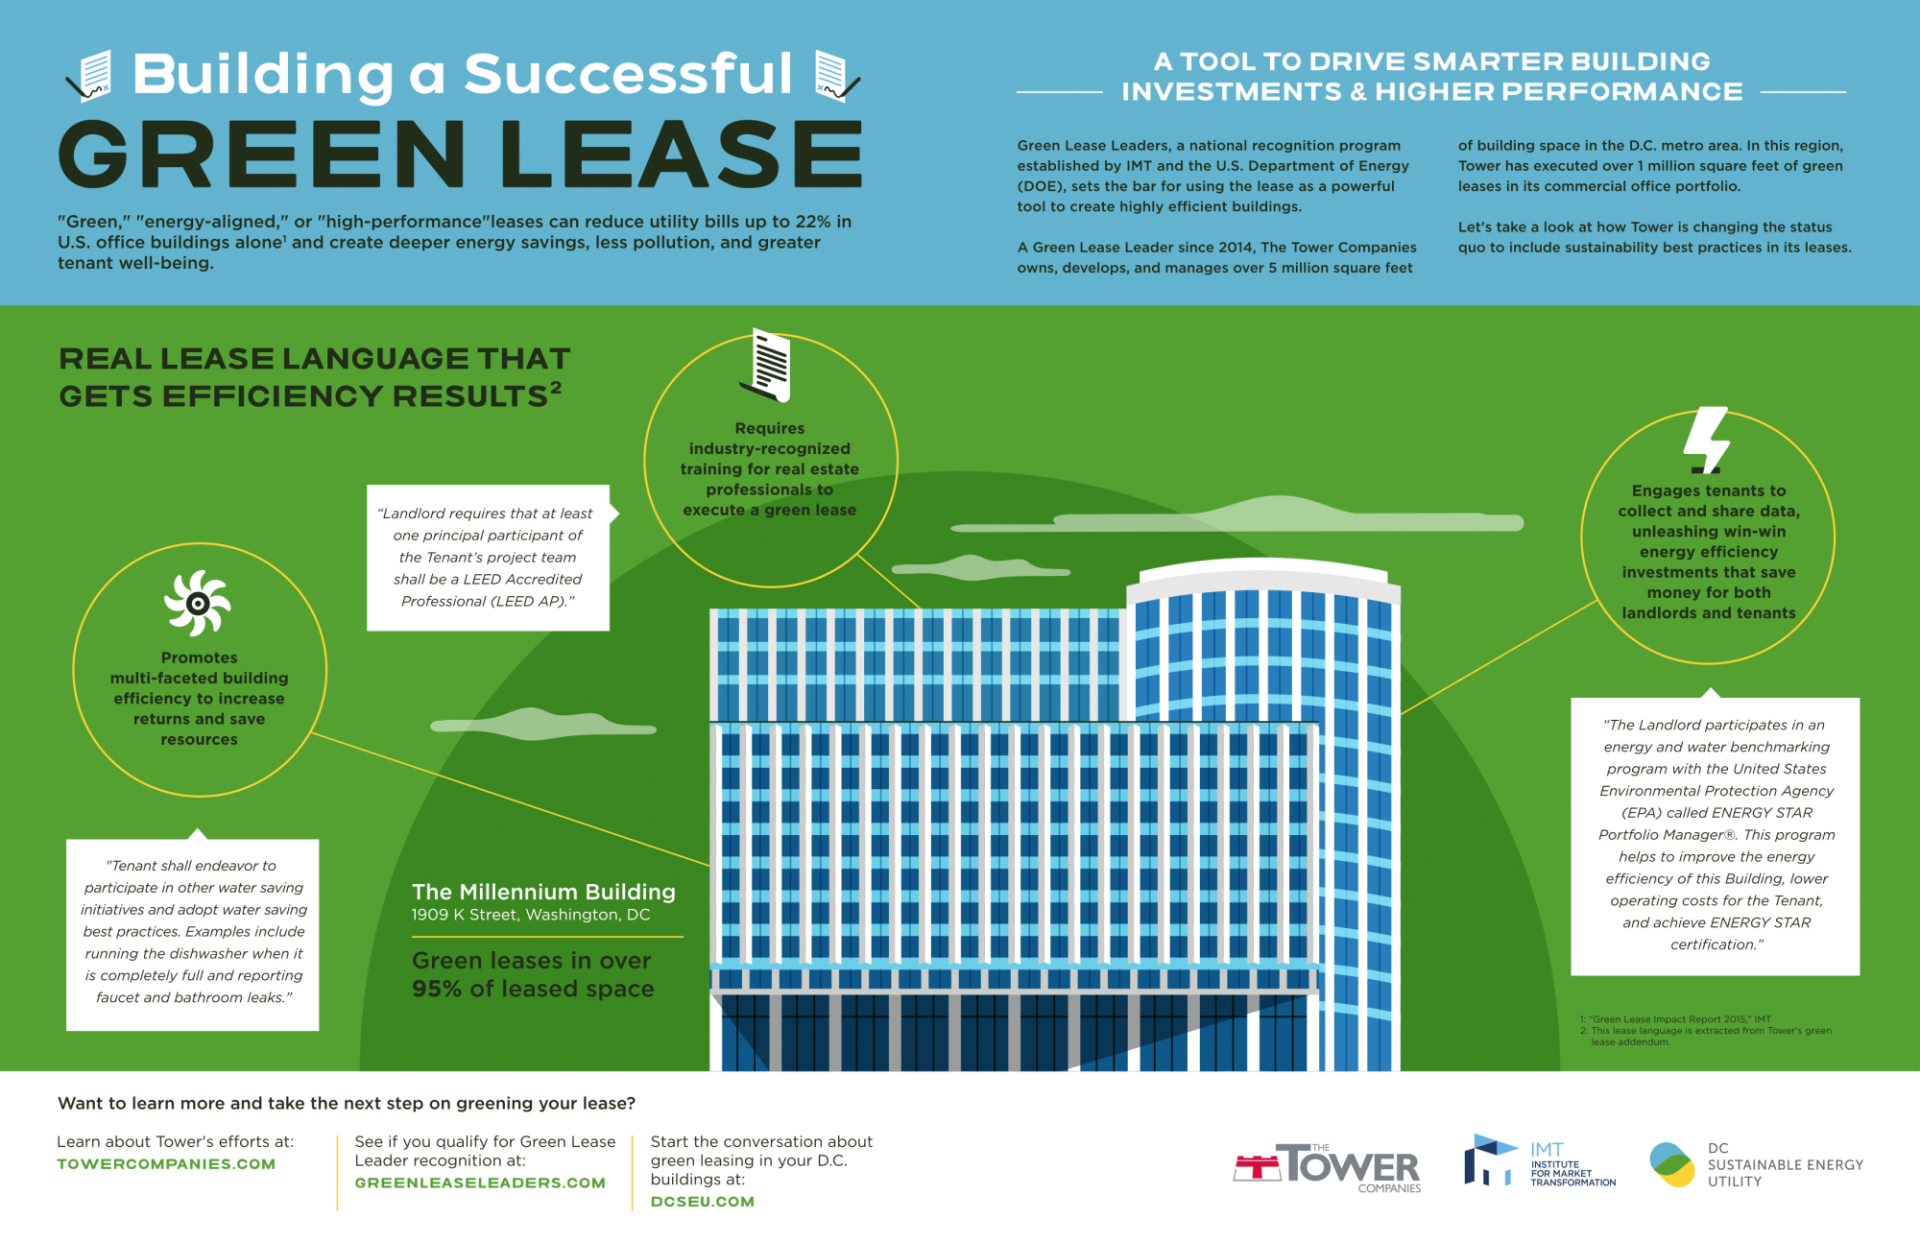 Building a Successful Green Lease Infographic